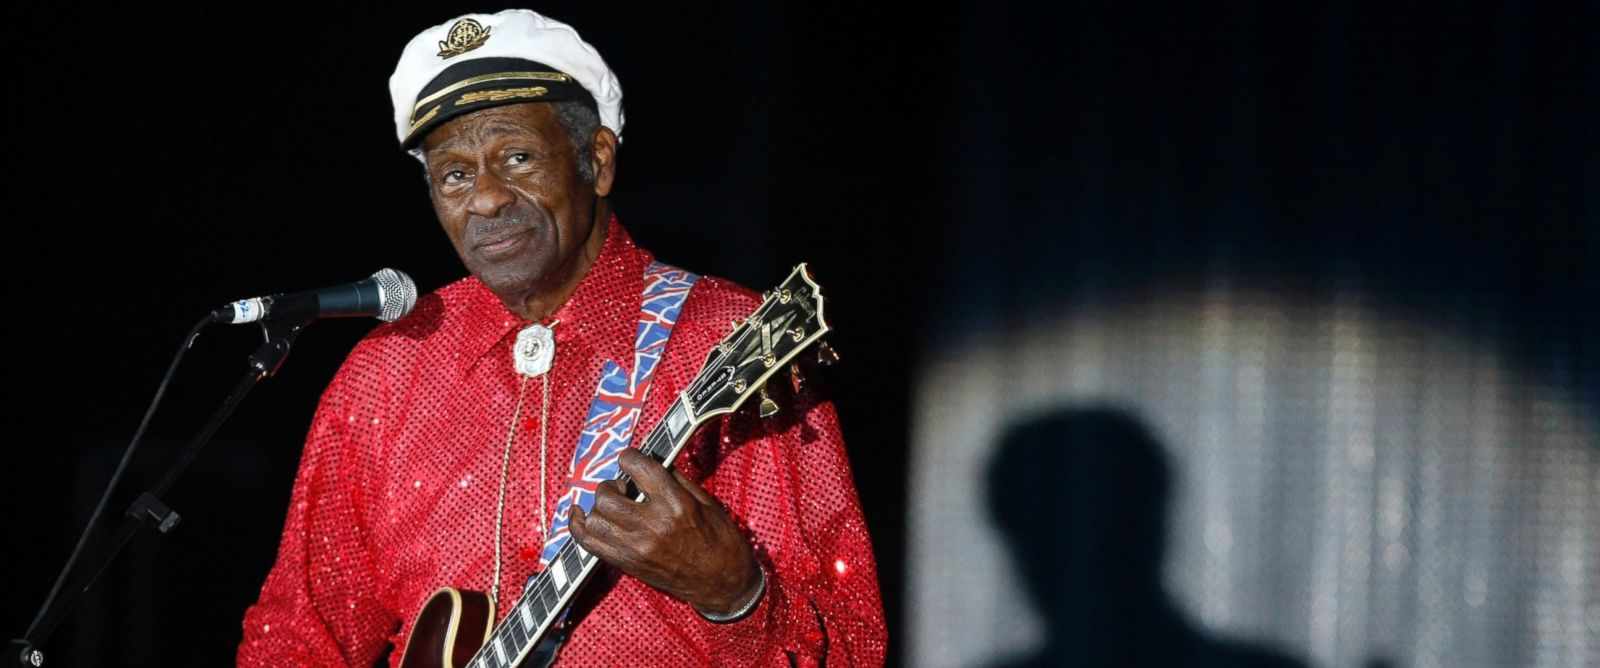 PHOTO: Rock and roll legend Chuck Berry performs during the Bal de la Rose in Monte Carlo, Monaco, on March 28, 2009.